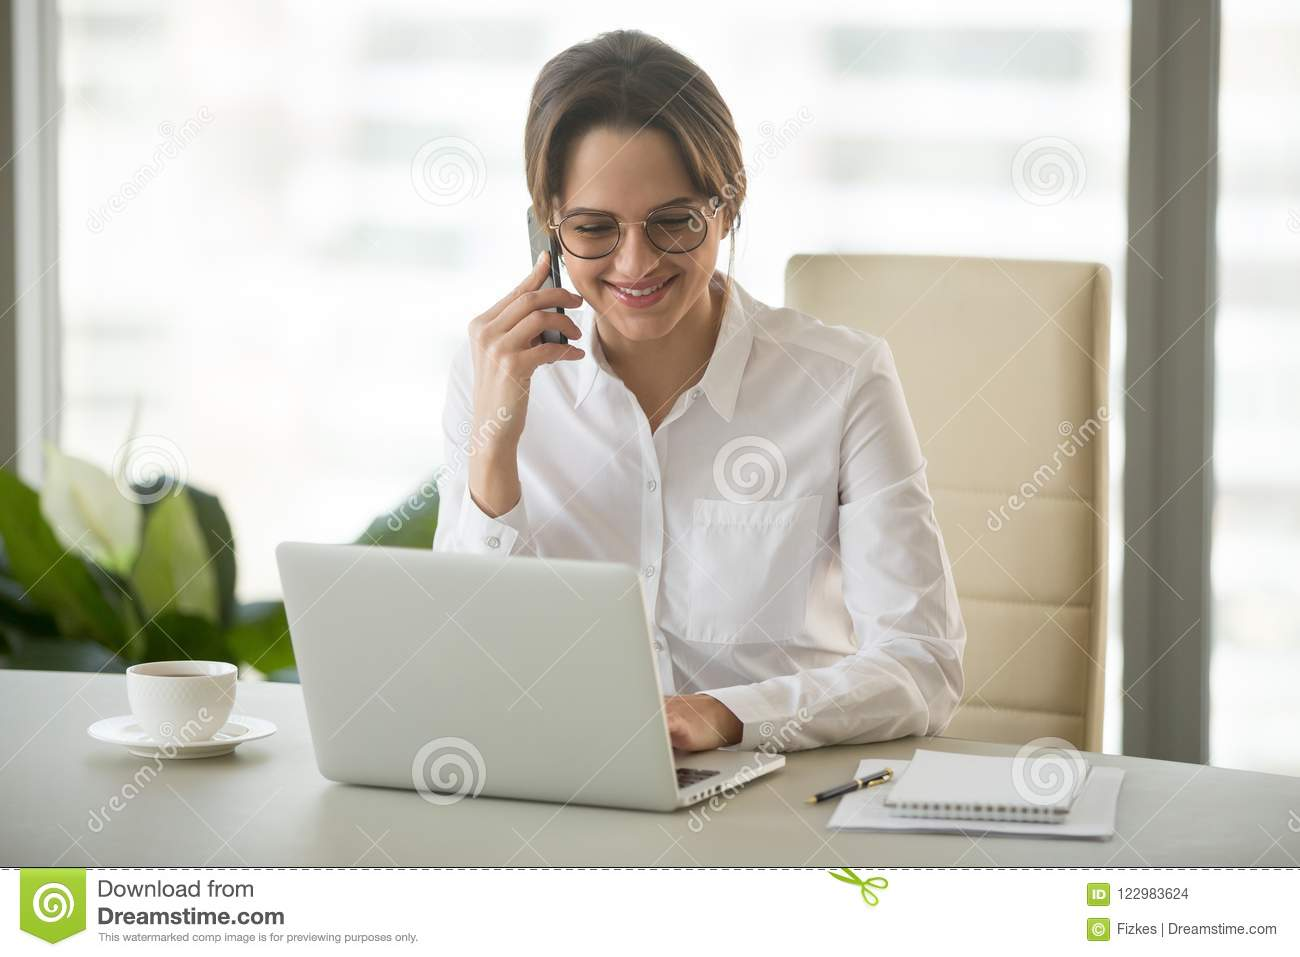 Smiling Businesswoman Talking On Phone While Working At